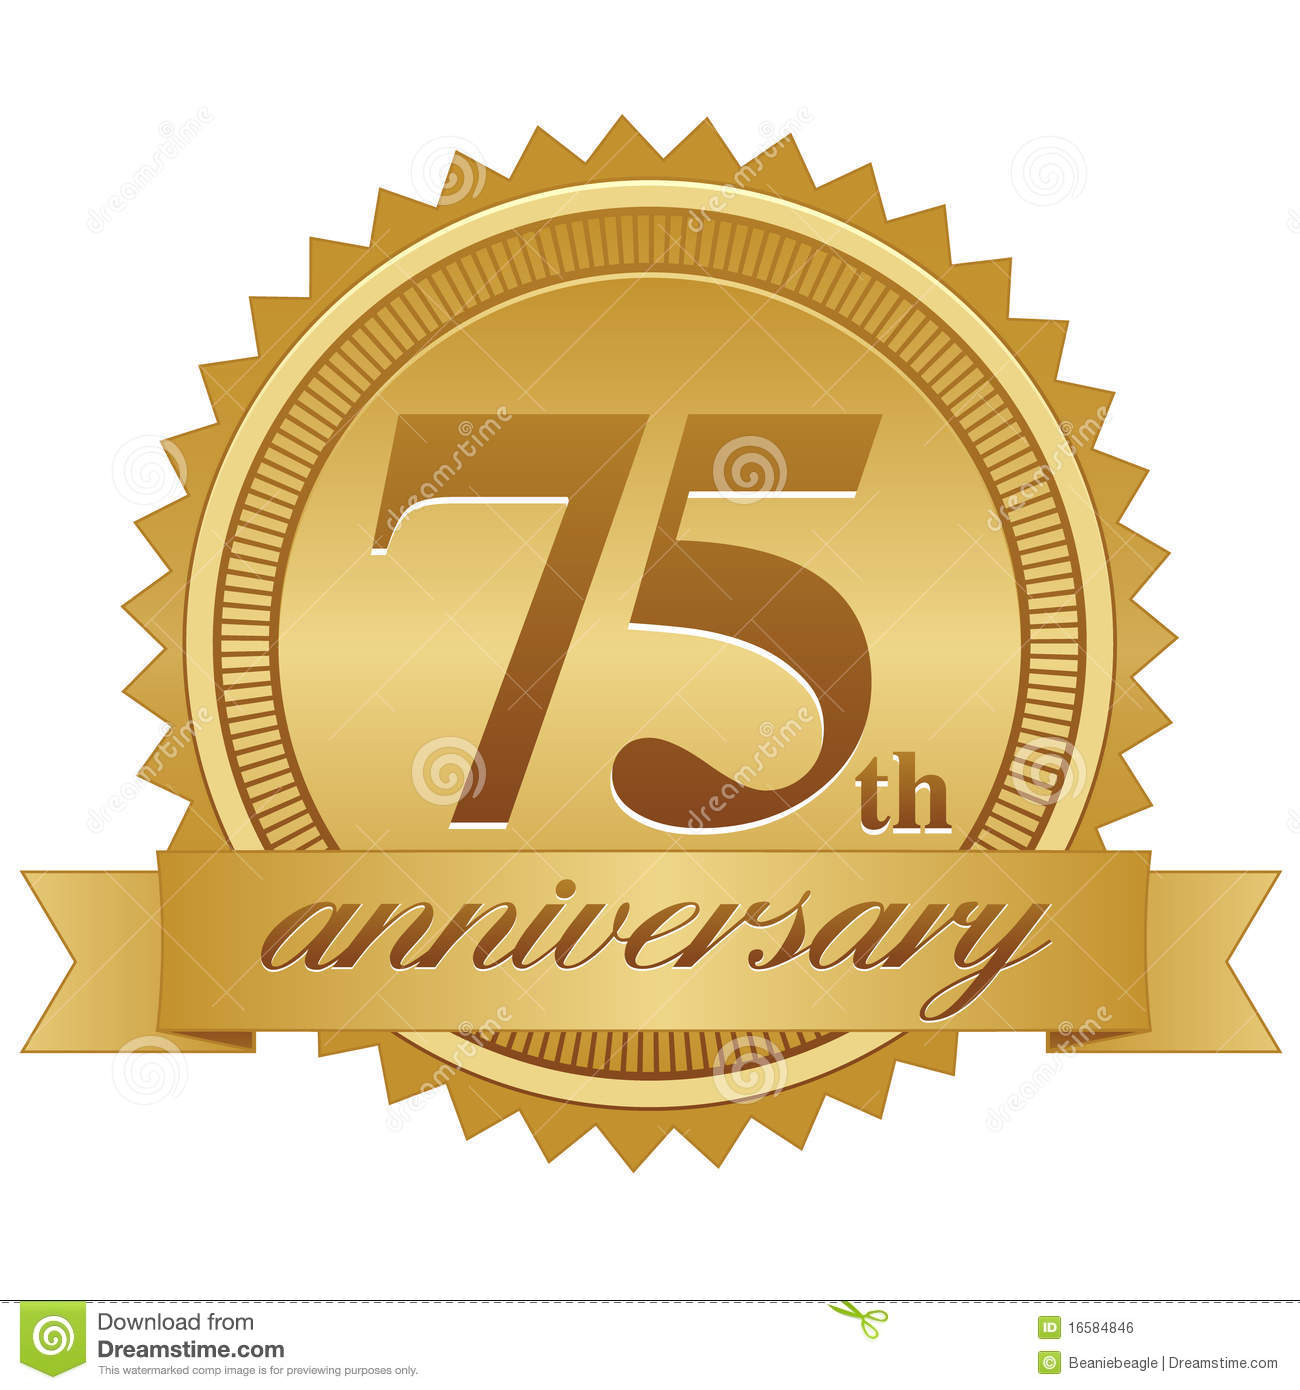 Anniversary seal clipart 3 » Clipart Station.